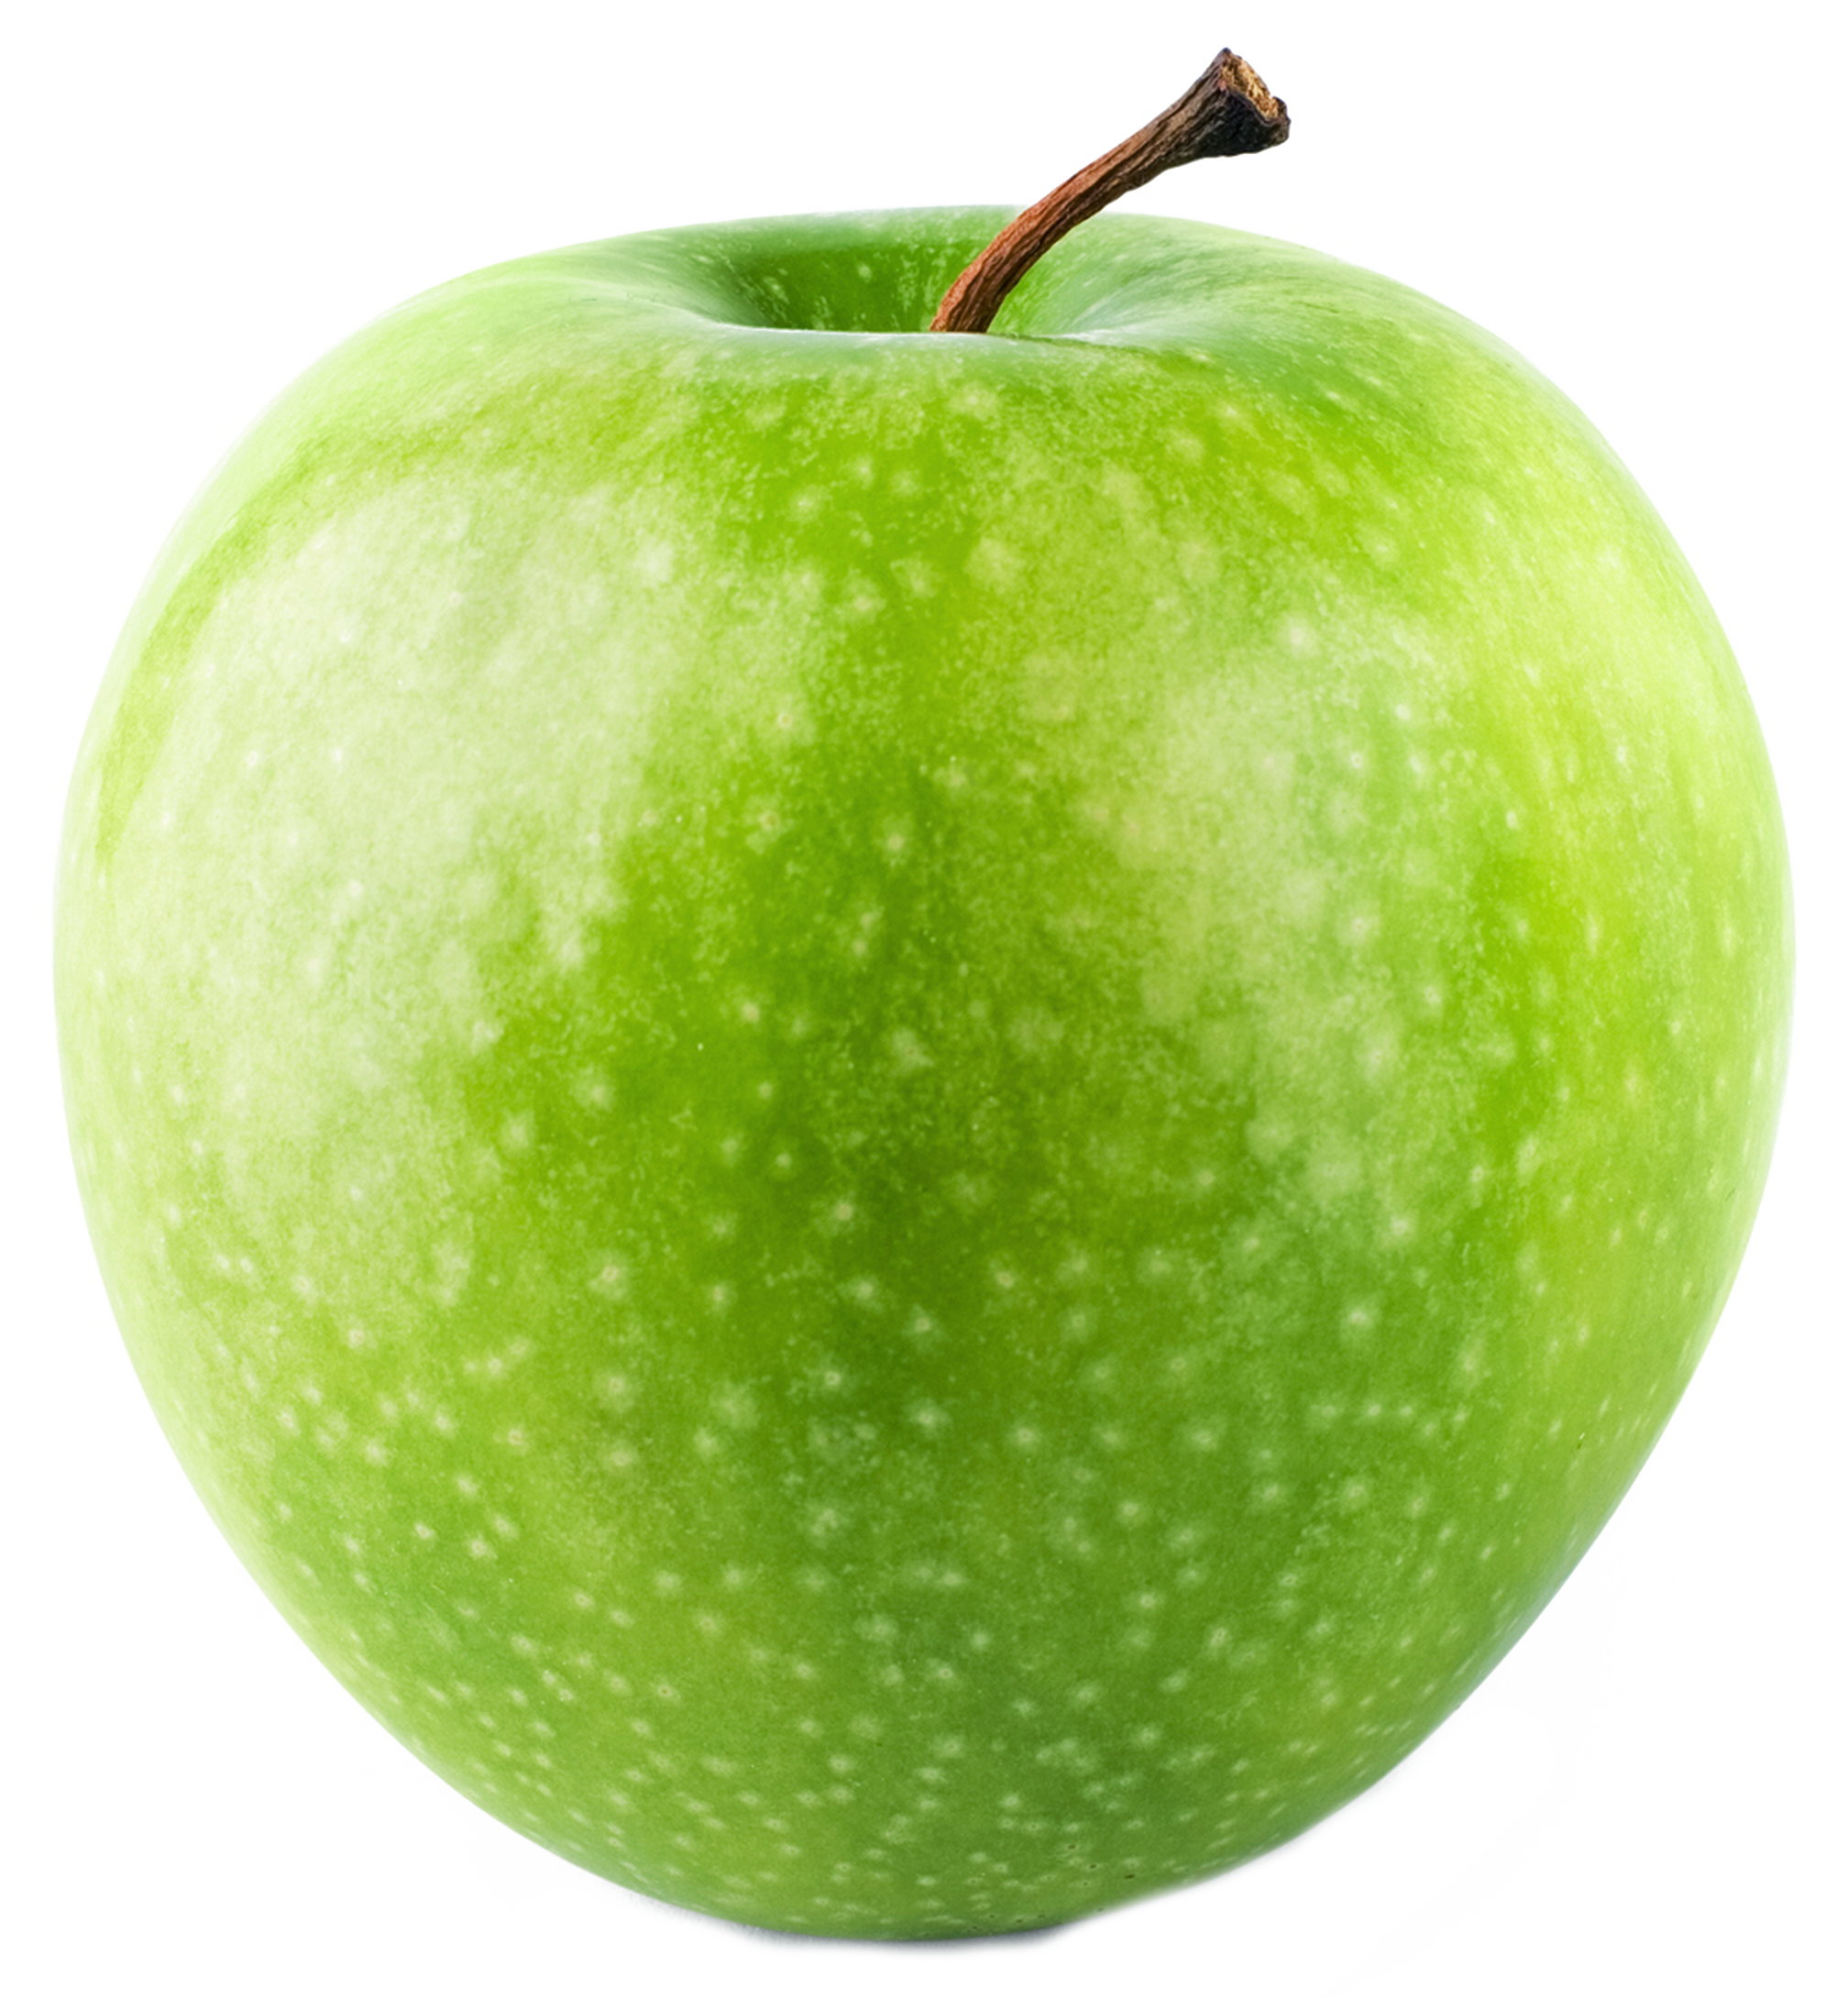 Large apple clipart gallery. Green apples png banner free library